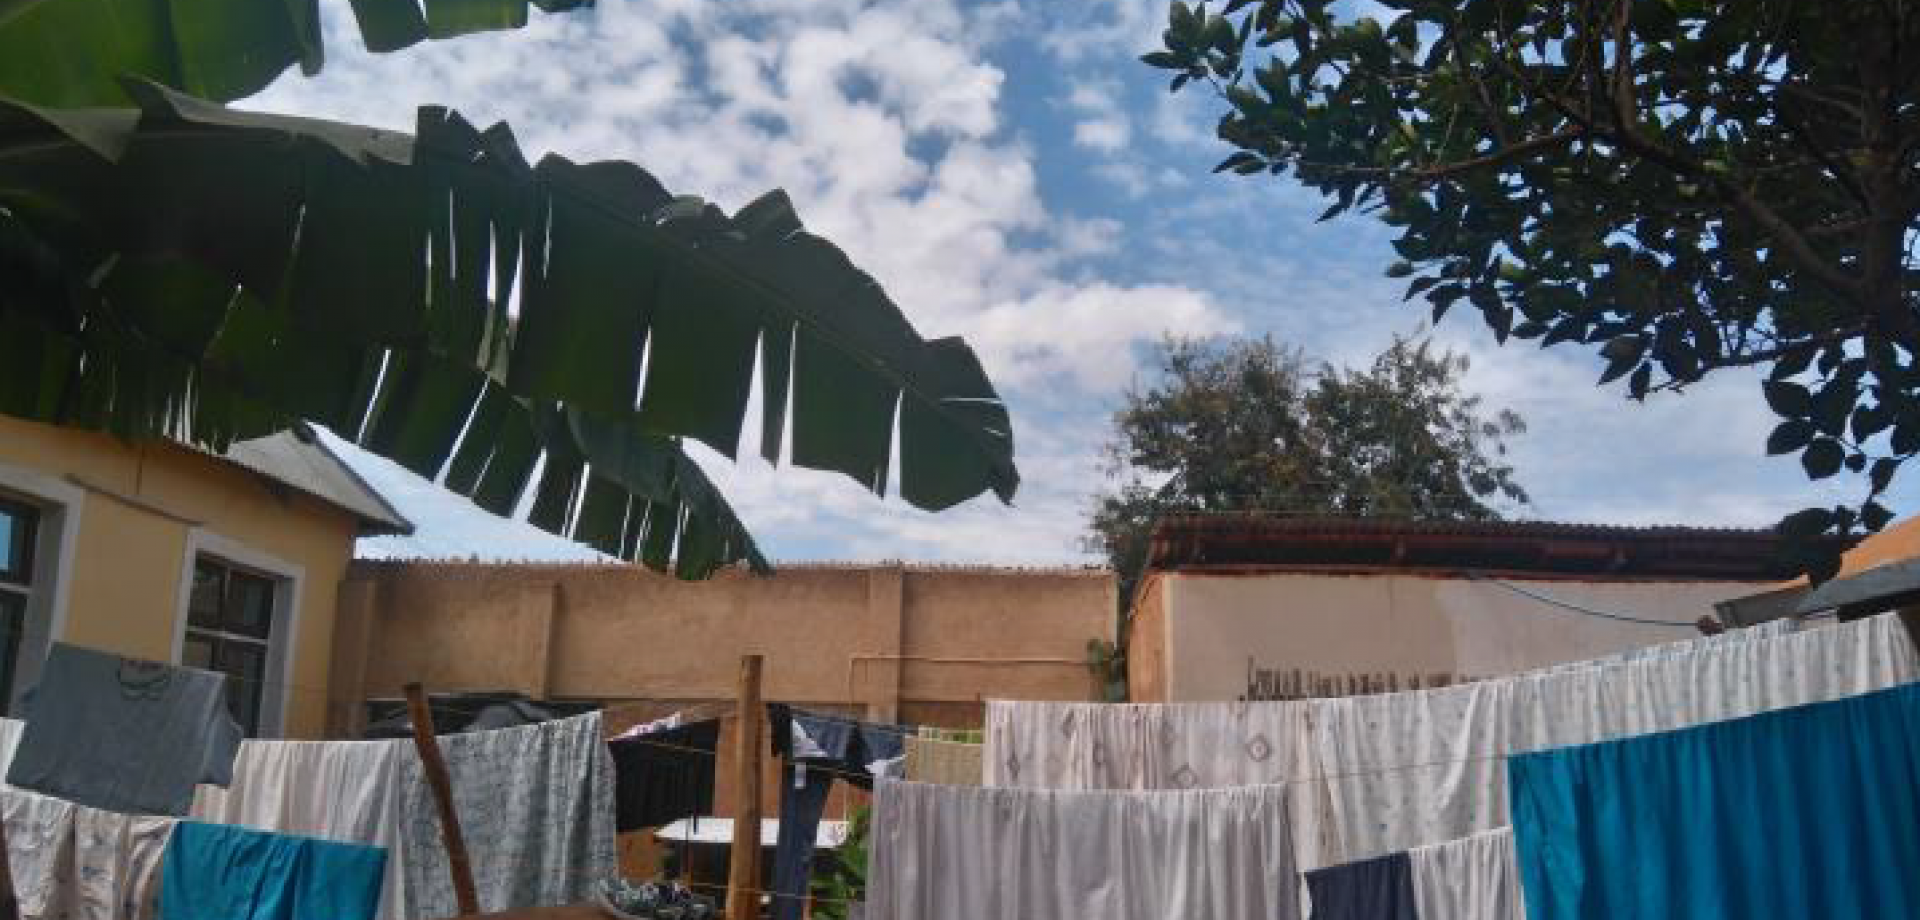 Washing drying in the MSF compound